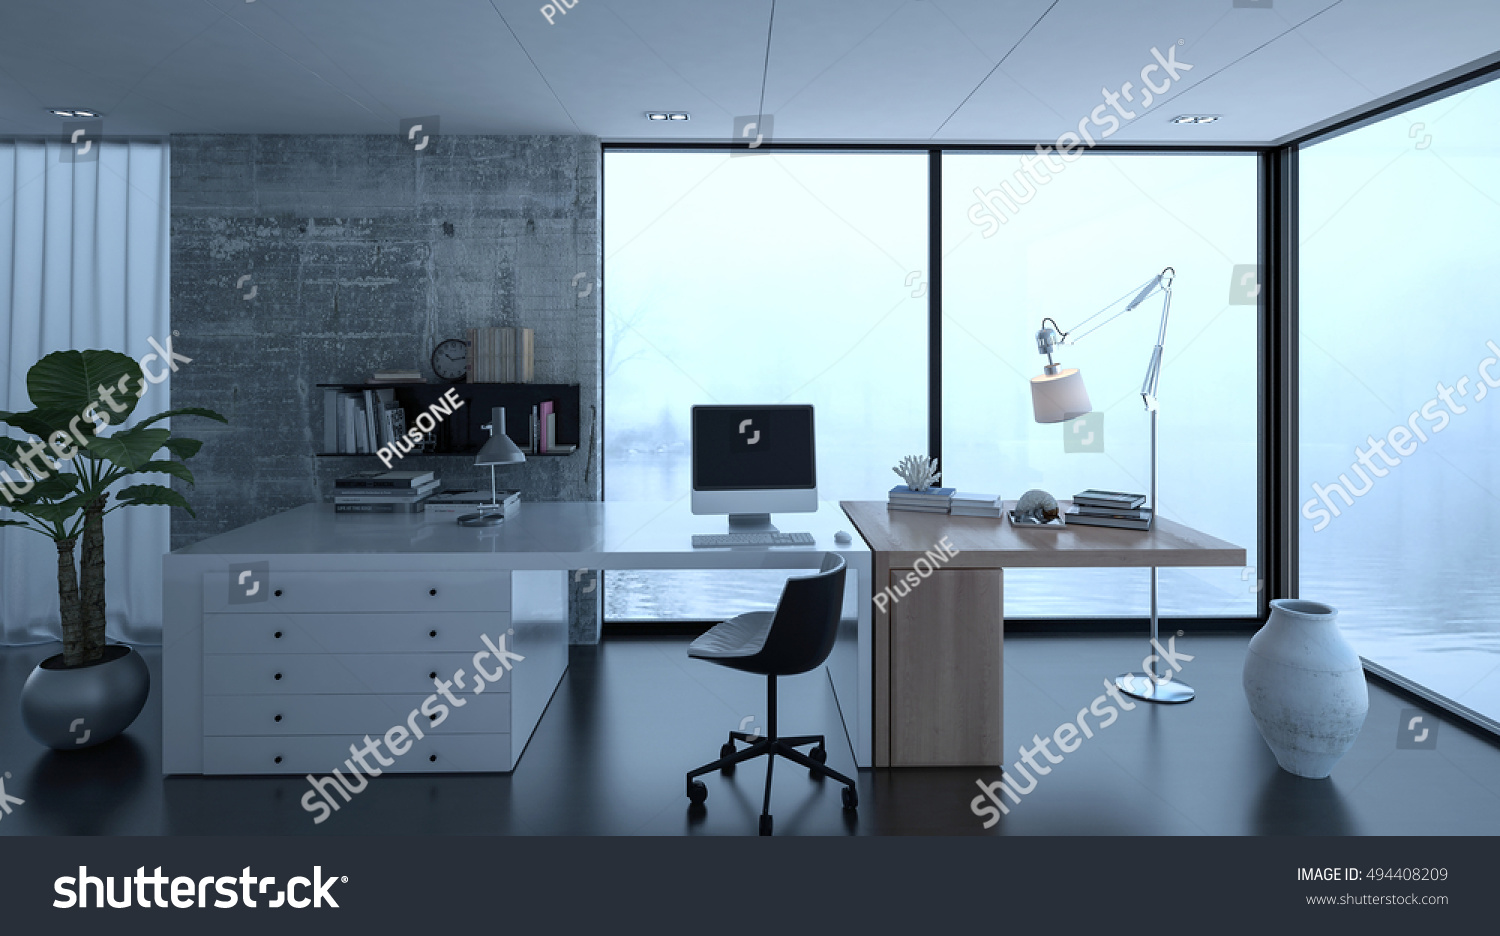 3d Rendering Of Small Home Office Interior At Luxury Home With Wide Desk.  Watery Scene